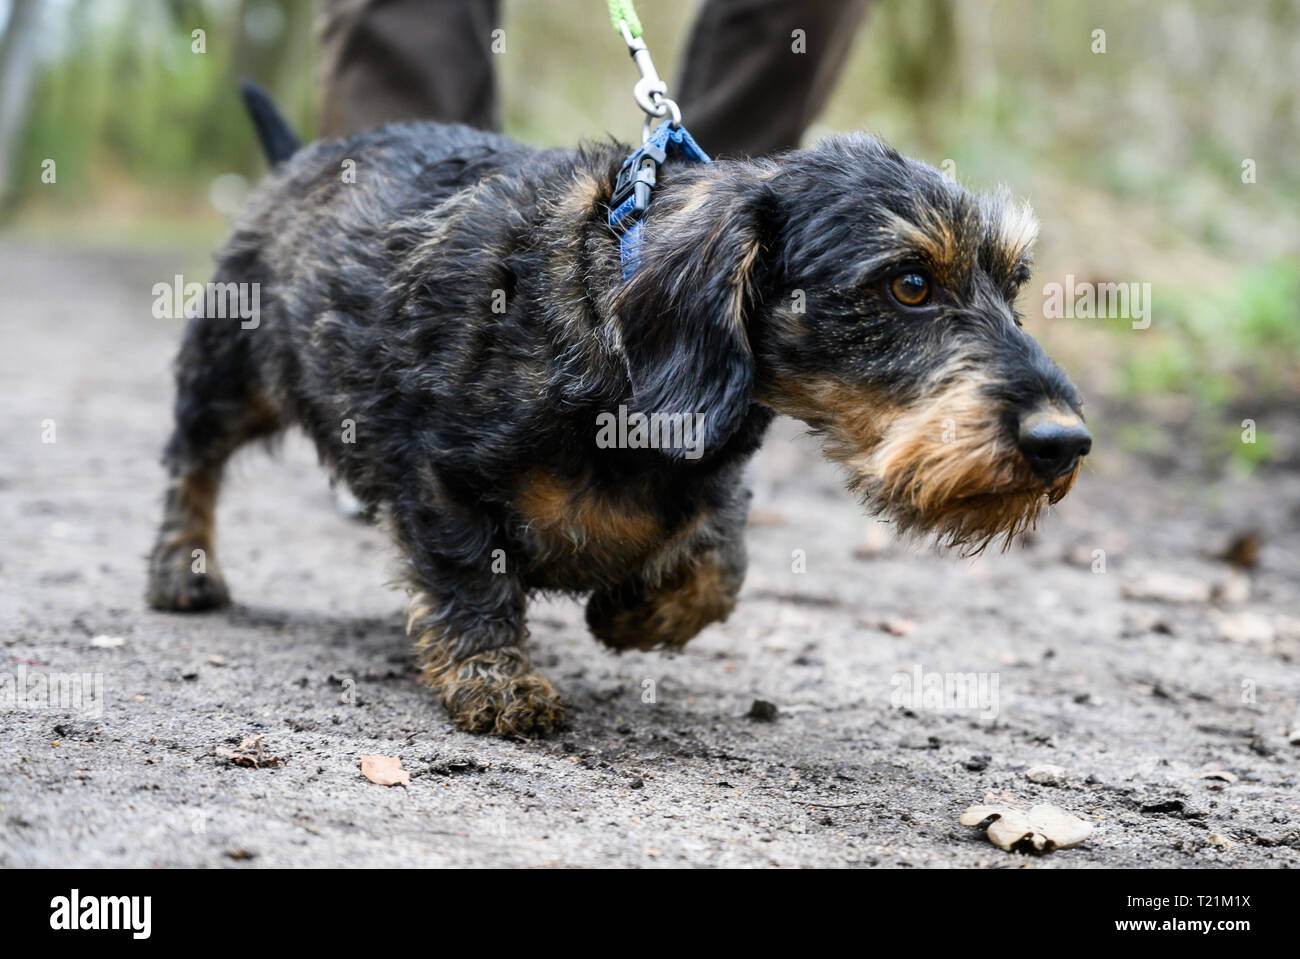 Hannover, Germany. 26th Mar, 2019. A man goes for a walk with his dog Django, a five-year-old rough-haired dachshund. From 01.04.2019 dogs have to be kept on a leash in many places in Lower Saxony. During the so-called brood and Setzzeit, the quadrupeds may not run freely approximately in the forest and on field-paths. Credit: Christophe Gateau/dpa/Alamy Live News - Stock Image